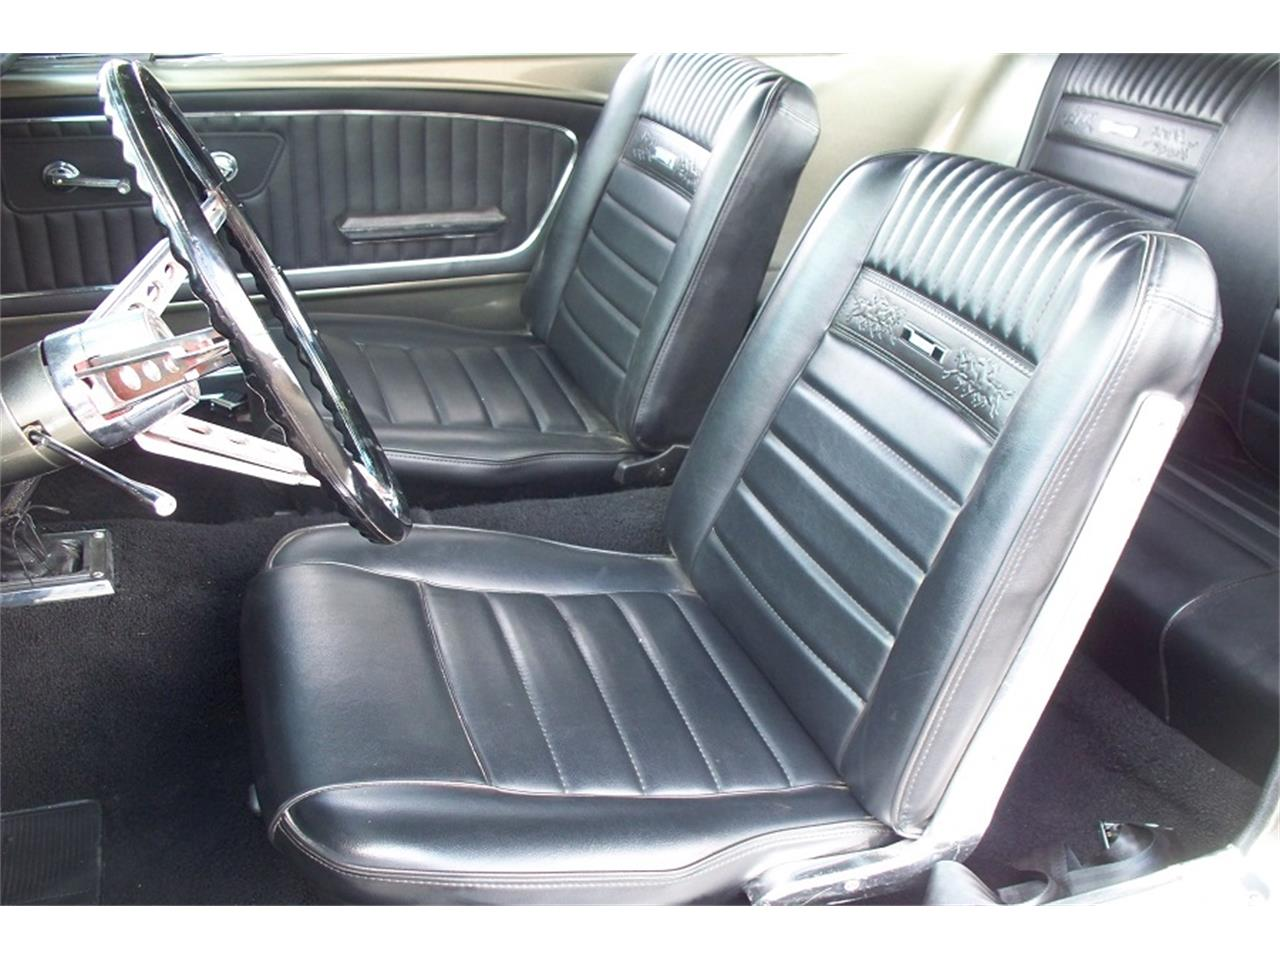 Large Picture of '65 Mustang located in CYPRESS Texas - $19,995.00 Offered by Performance Mustangs - QJQH